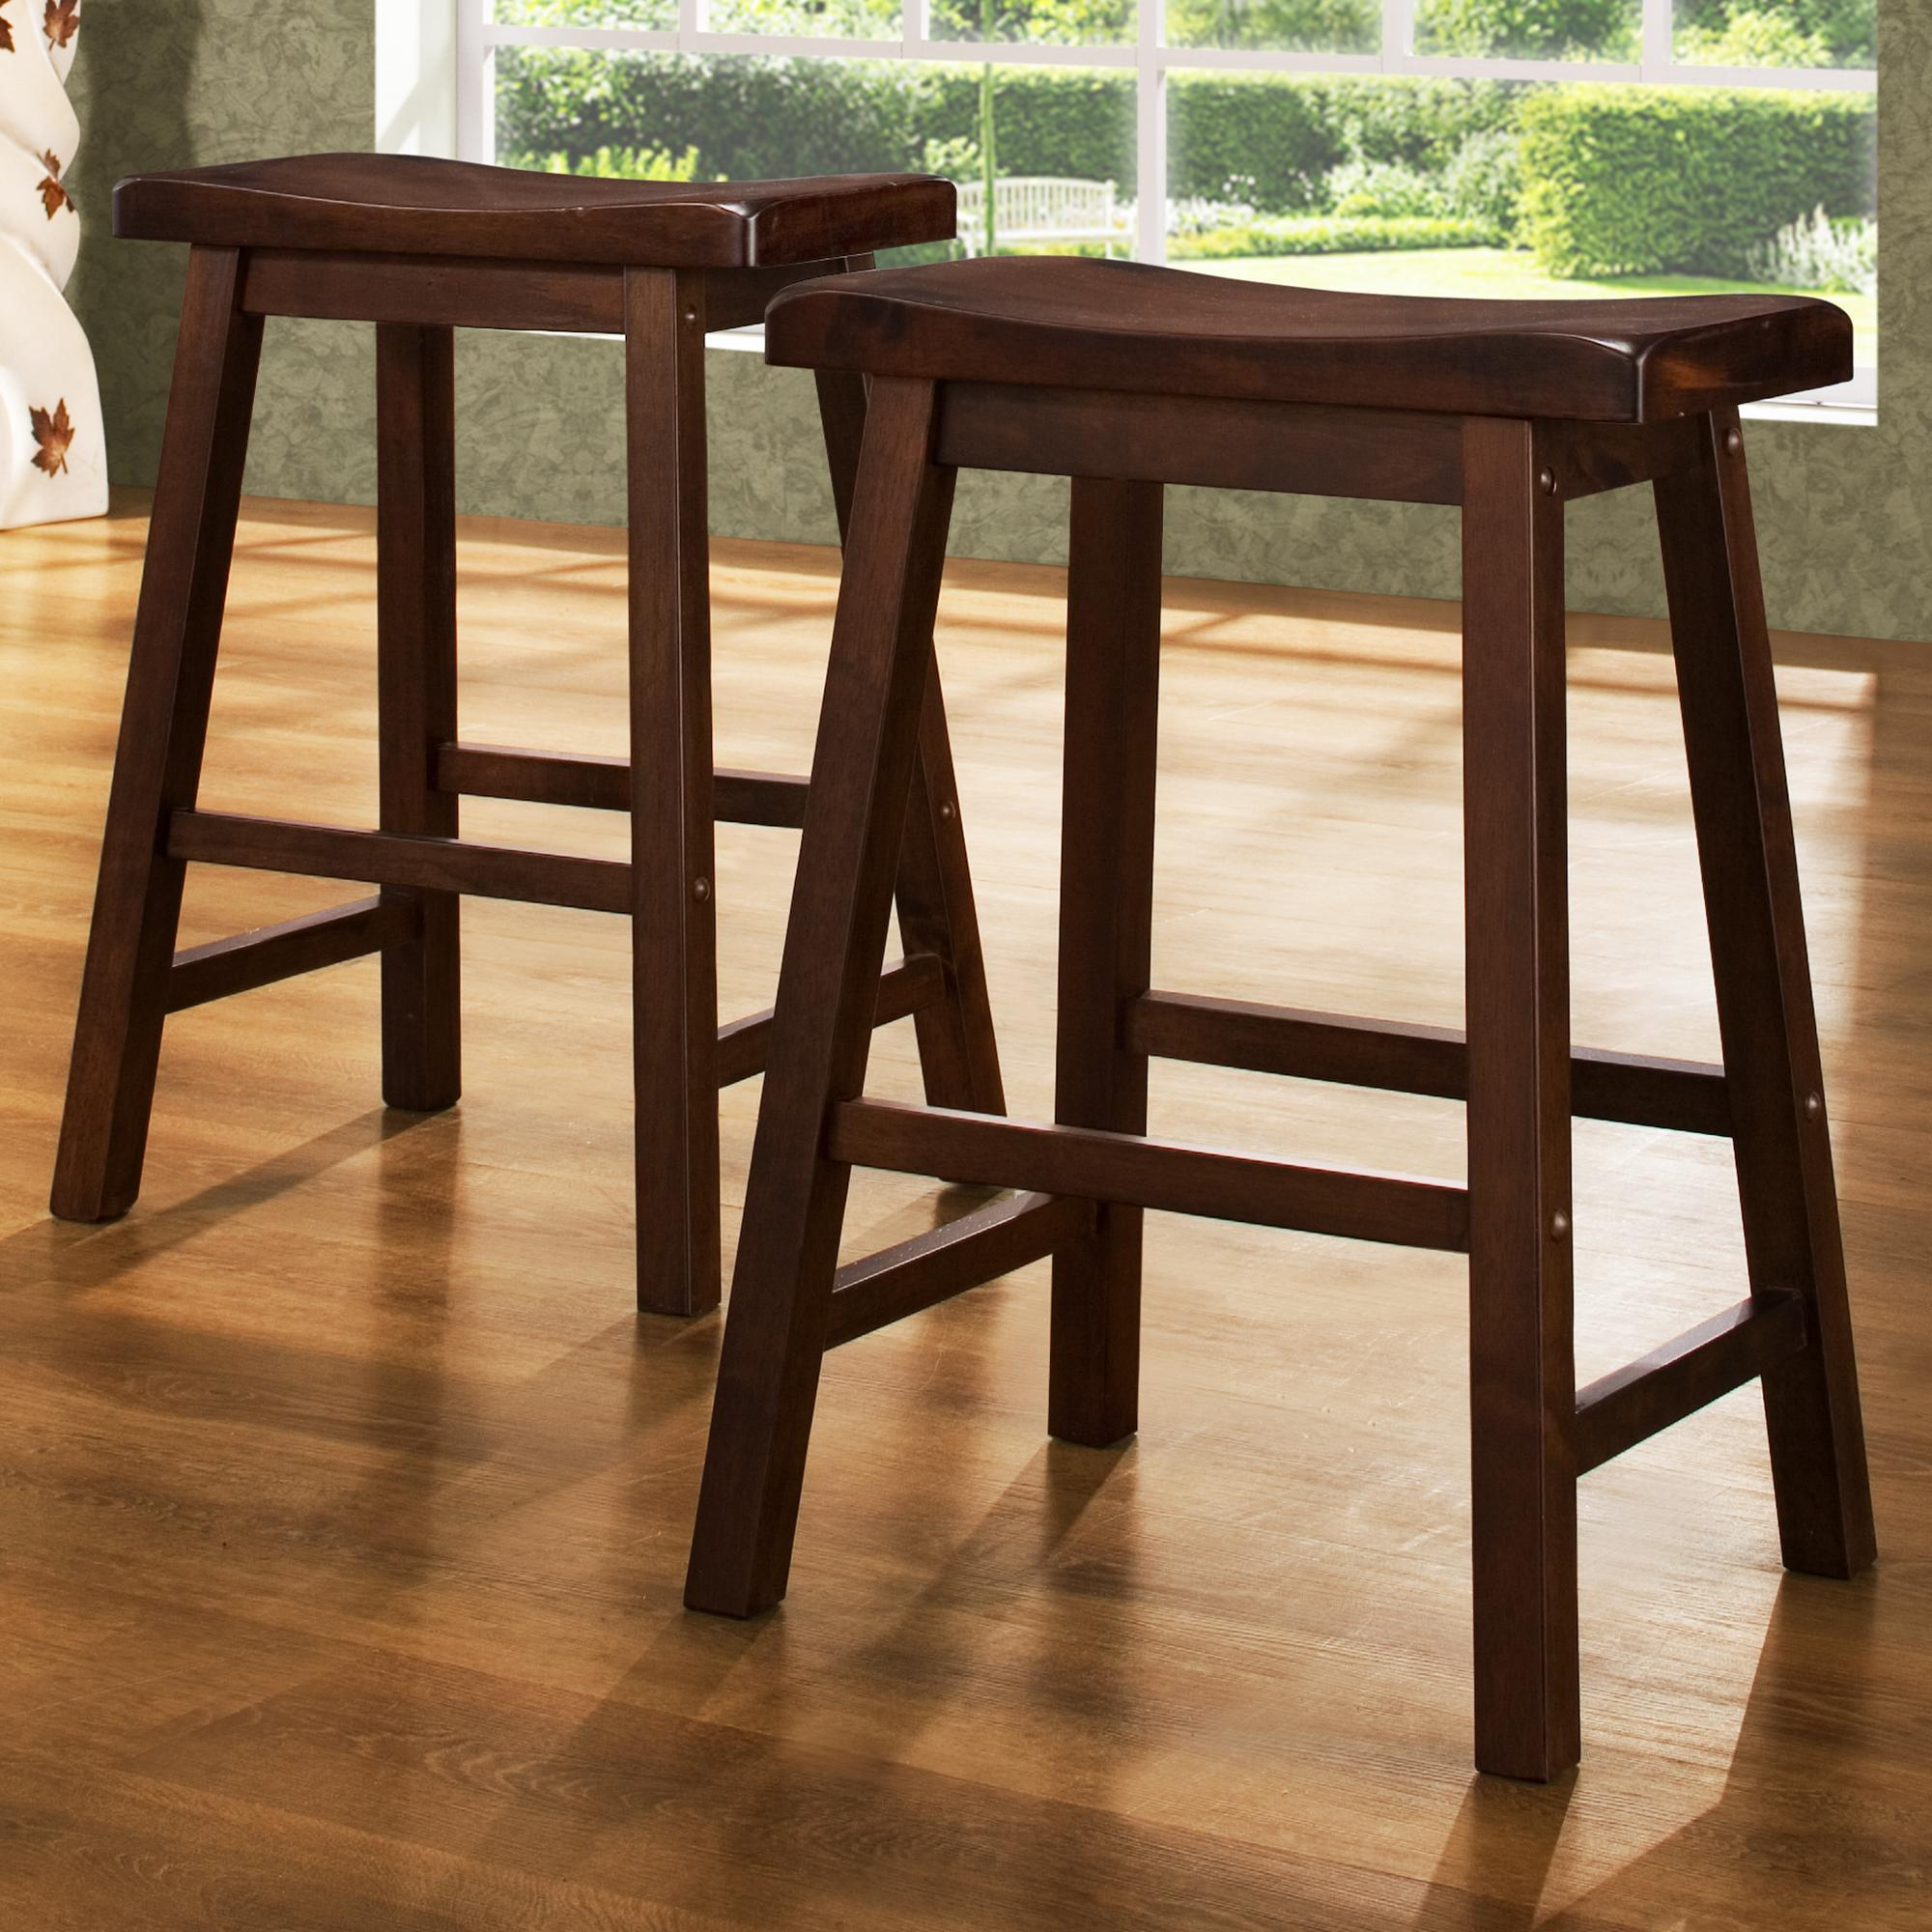 Homelegance 5302 24 Inch Stool - Item Number: 5302C24